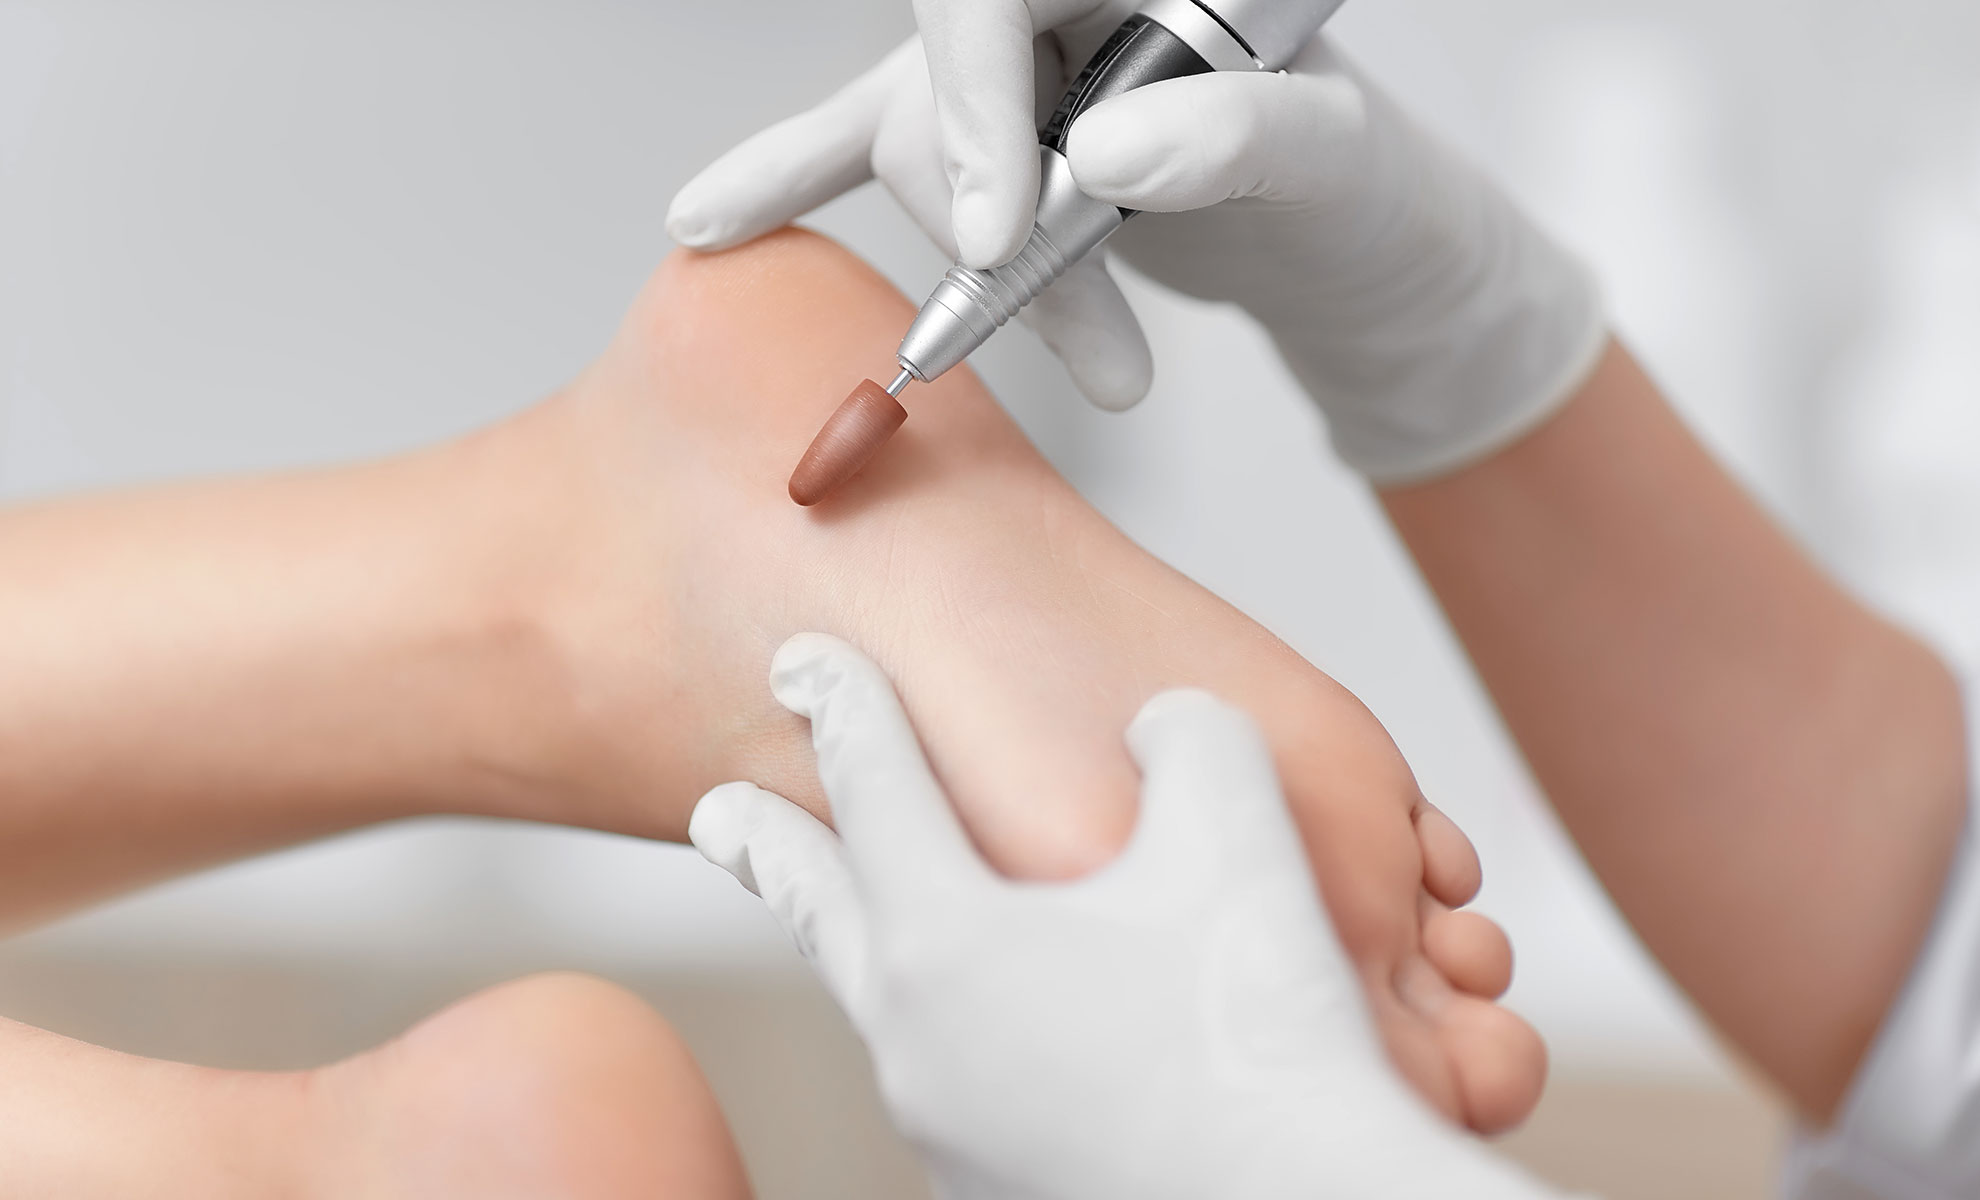 Close up of podiatrist using special grinding equipment and making procedure polish for feet. Podiatry specialist in white gloves cleaning skin of client from callus and corn with professional tool.